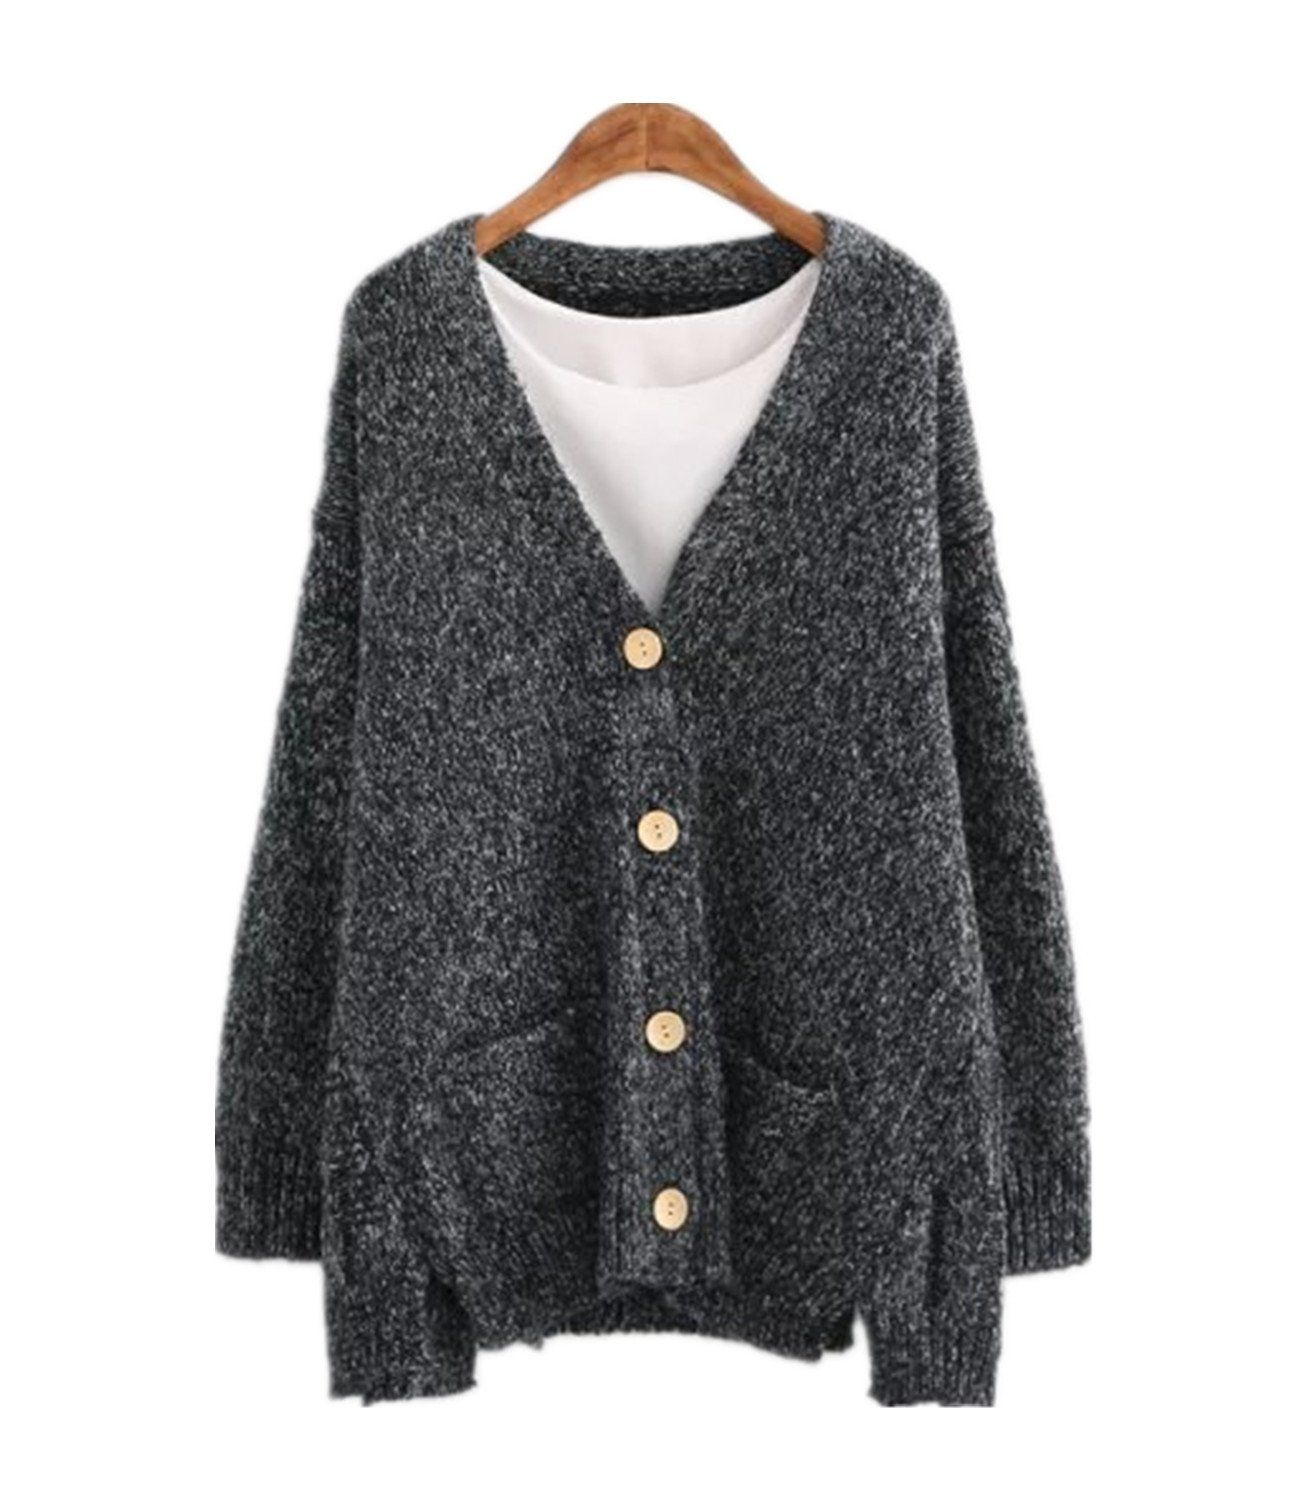 HEYFAIR Women's Loose Button Down Baggy Knitted Sweater Cardigan ...